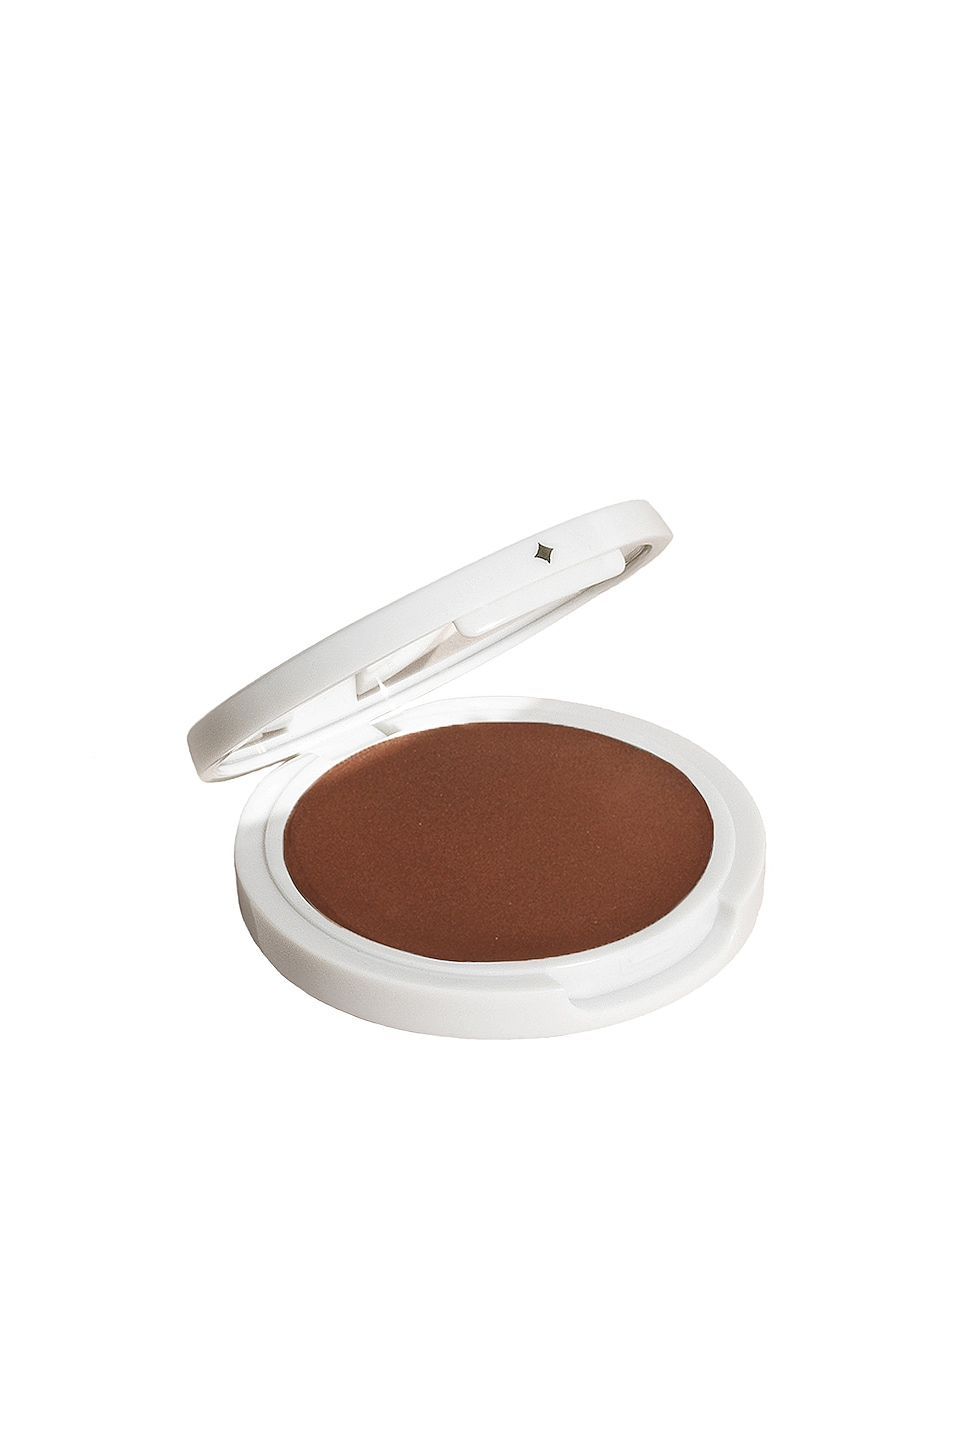 Jillian Dempsey Lid Tint Satin Eye Shadow in Bronze